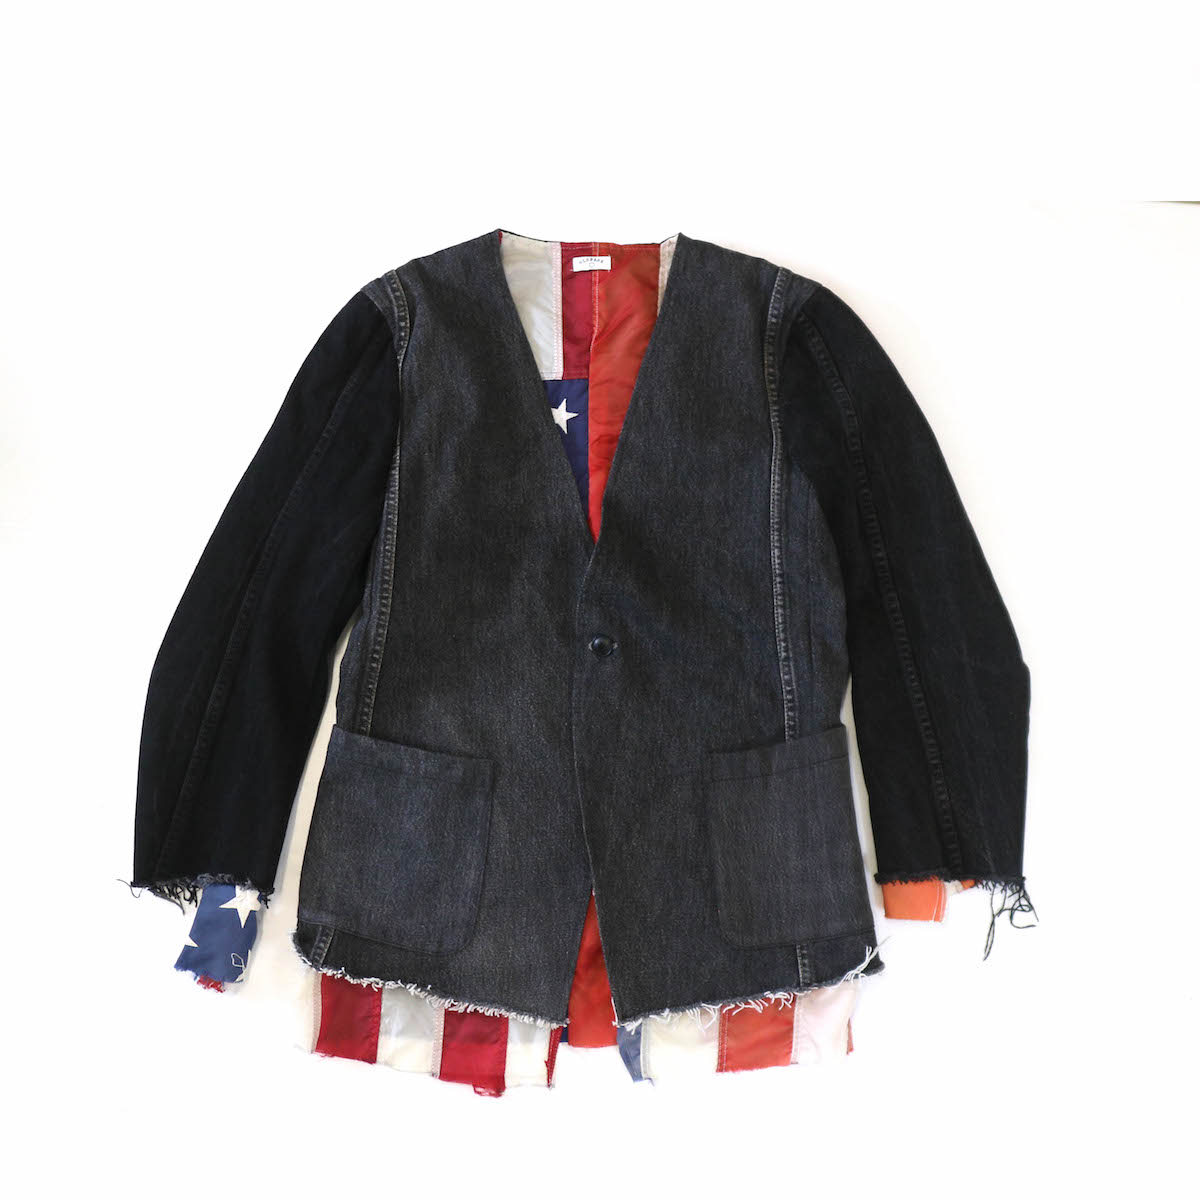 OLD PARK / INSIDE OUT N/C JACKET -Msize